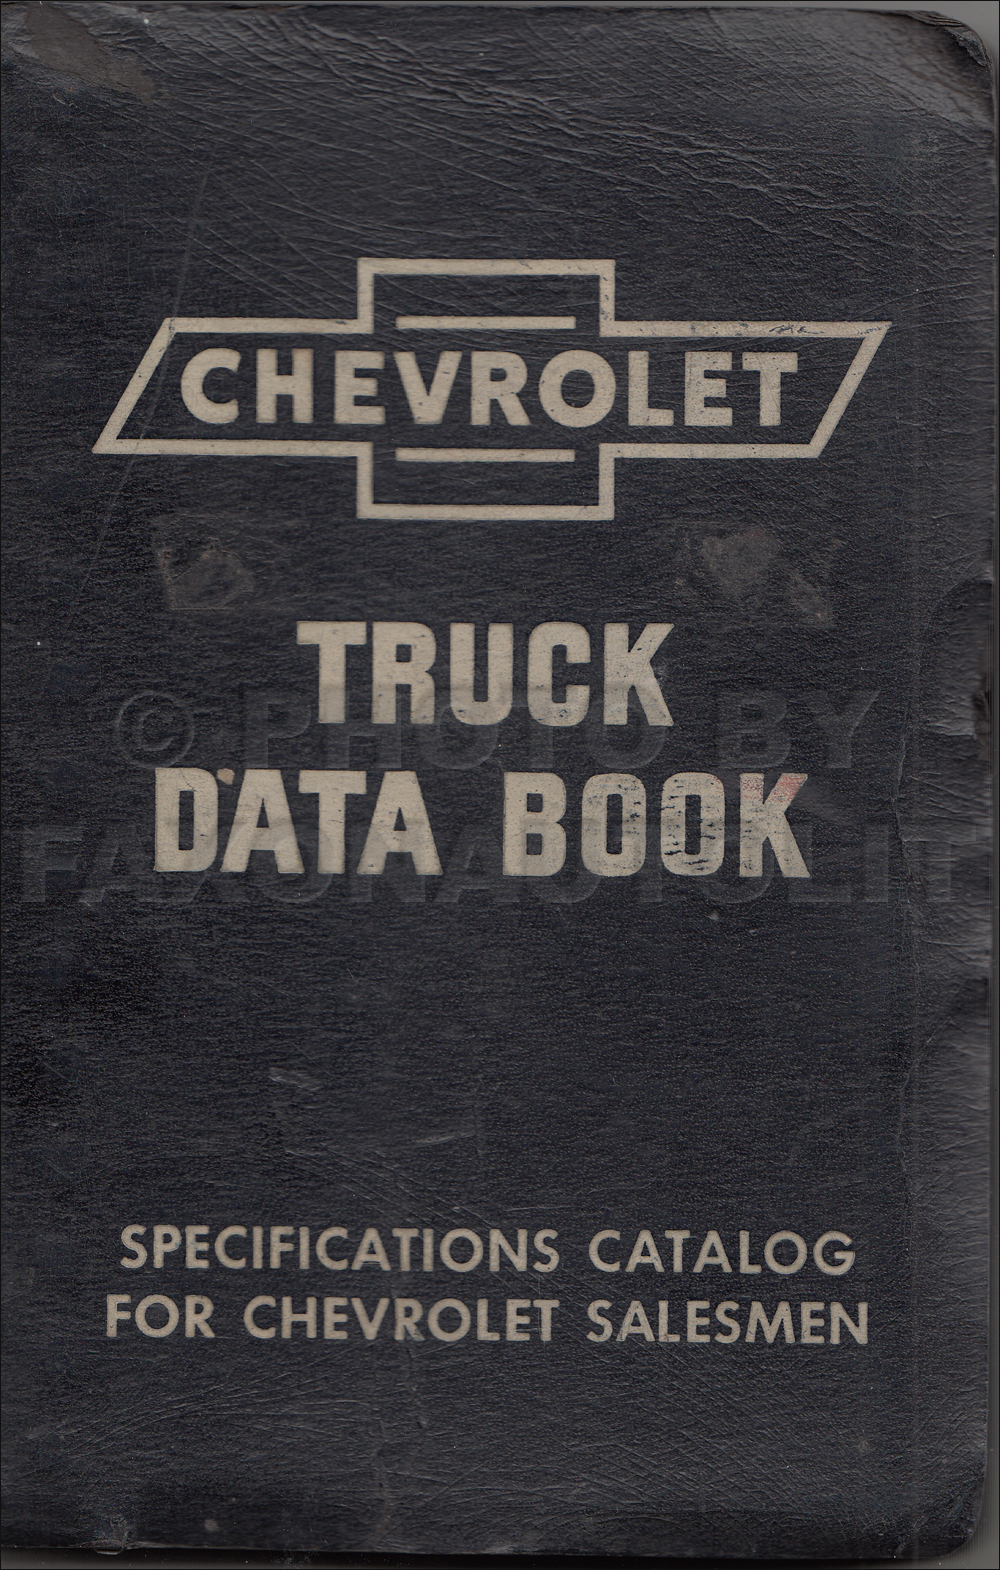 1954-1955 First Series Chevrolet Truck Data Book Original